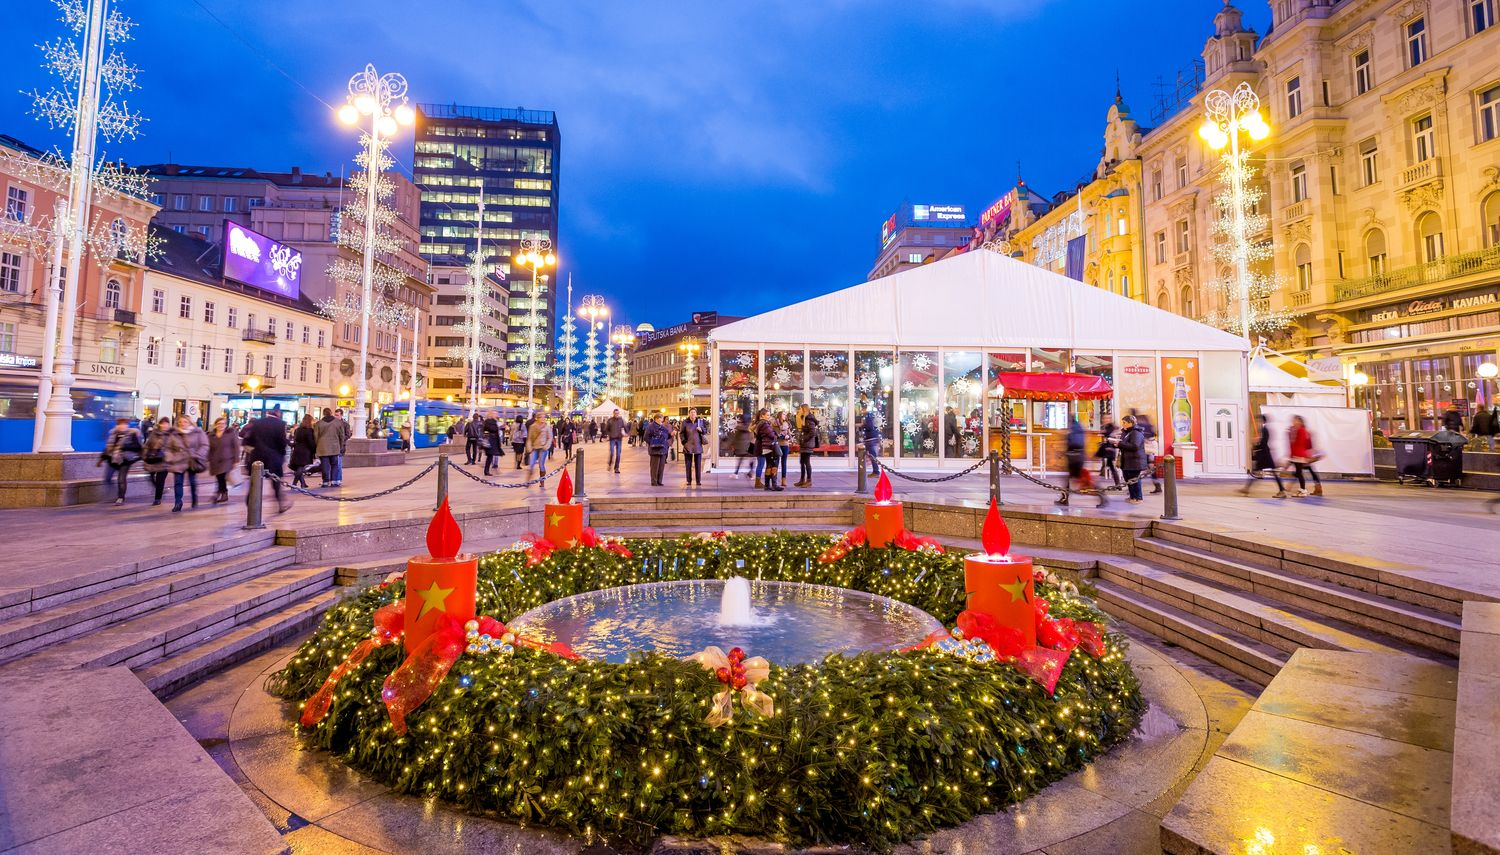 7 Things Not to Miss at Europe's Best Christmas Market – Advent in Zagreb